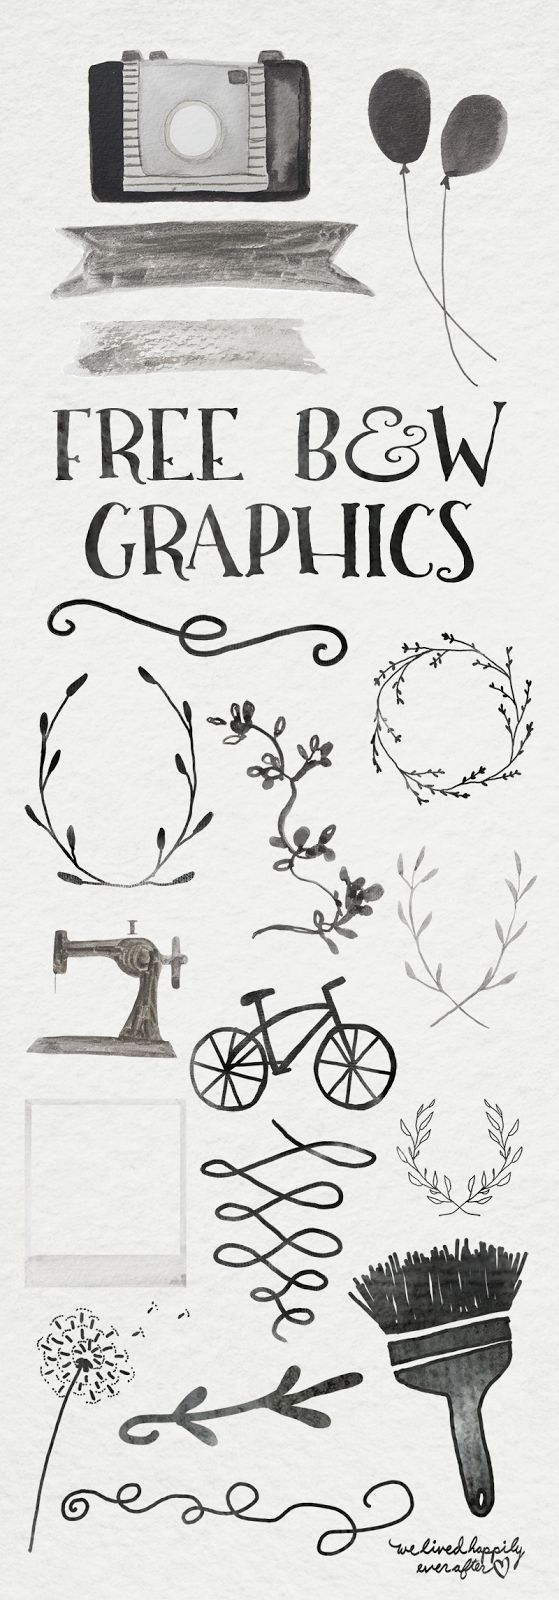 B&W Ink Digital Graphic Freebiees